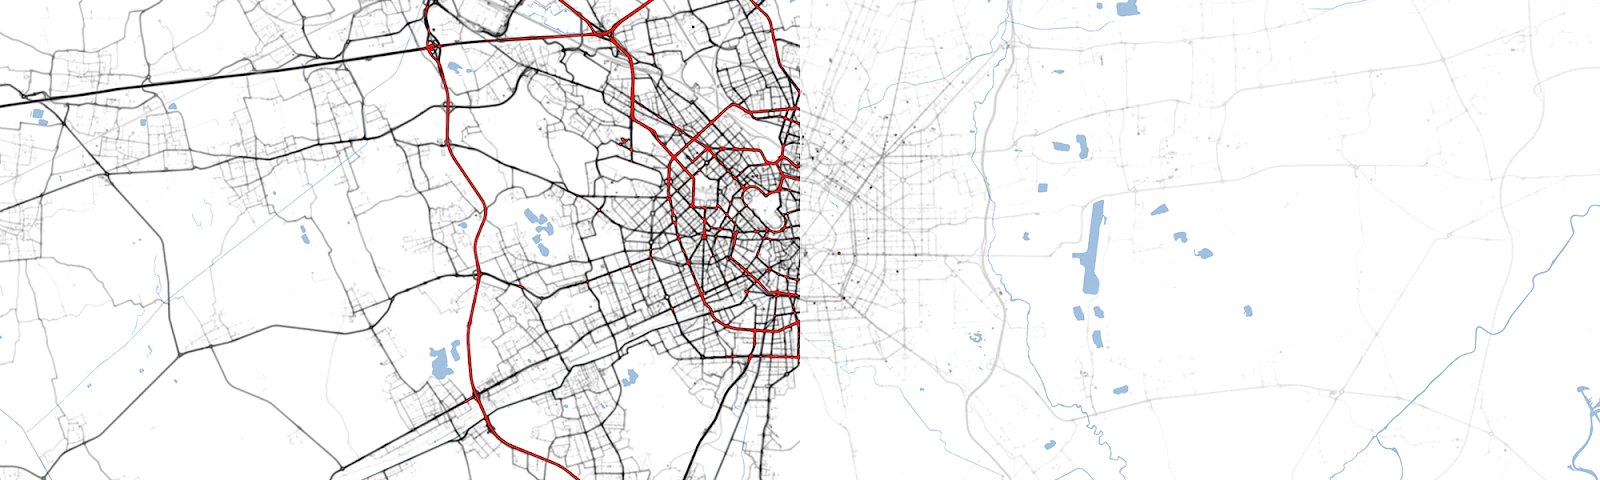 a map of Milan with high density and congestion on the left side (Janury, 2020) and low density on the right (April, 2020)